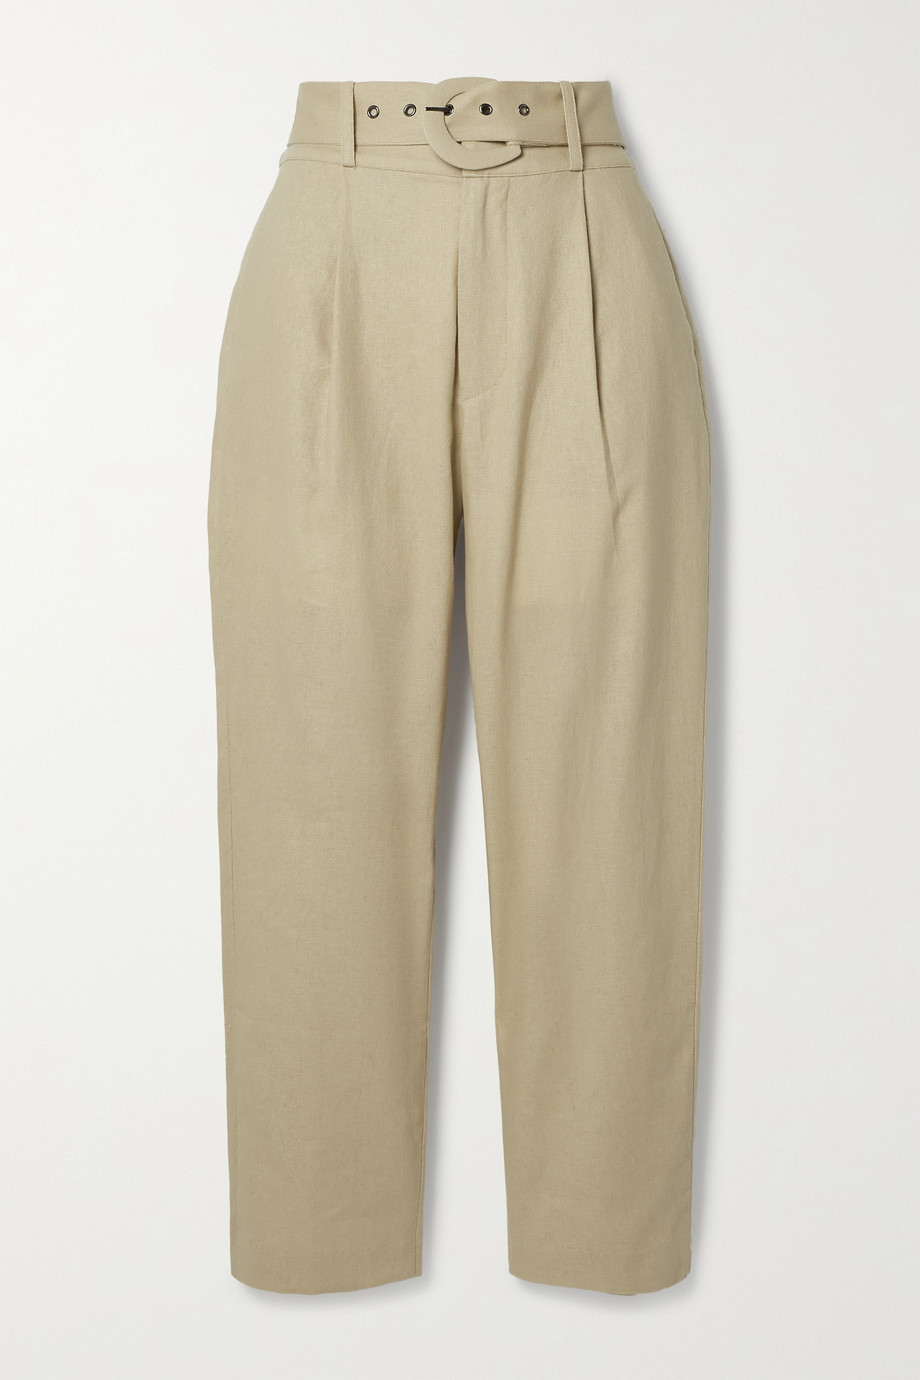 Anine Bing Elyse belted linen and cotton-blend straight-leg pants